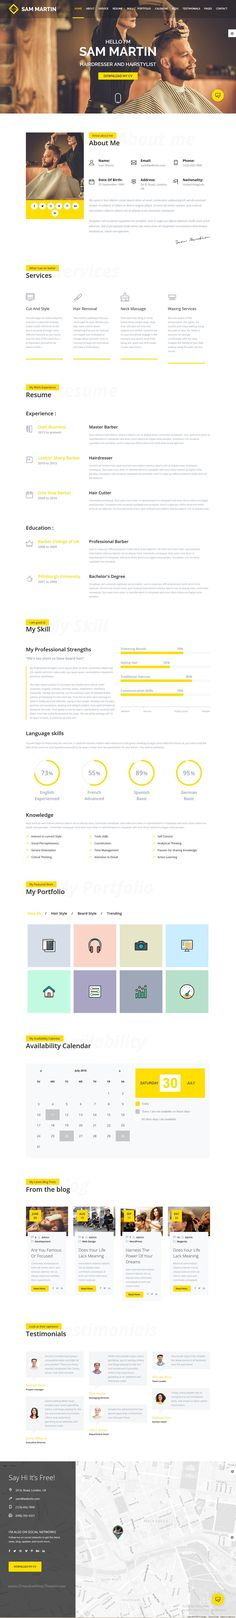 Mack is a multipurpose 8in1 #bootstrap template for stunning